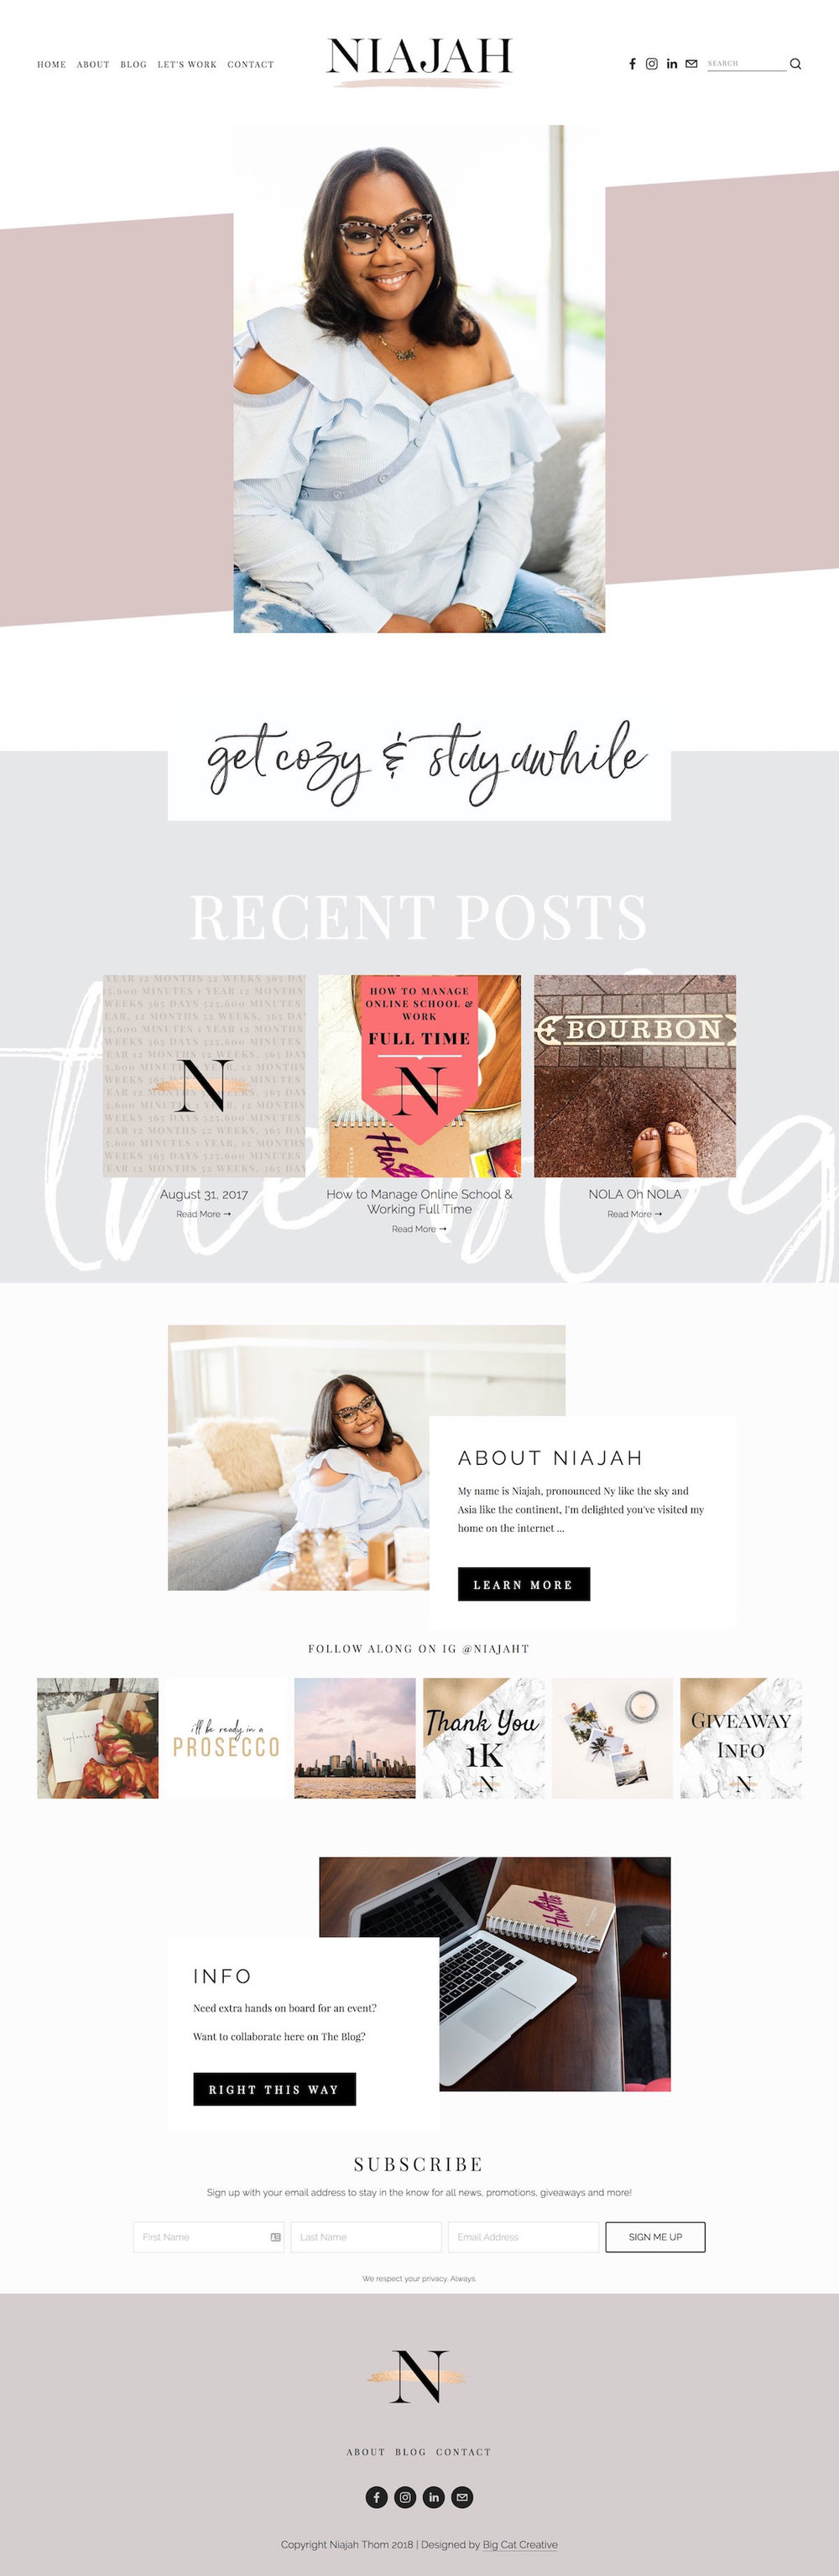 Squarespace Template Design by Big Cat Creative - Template Showcase - Niajah